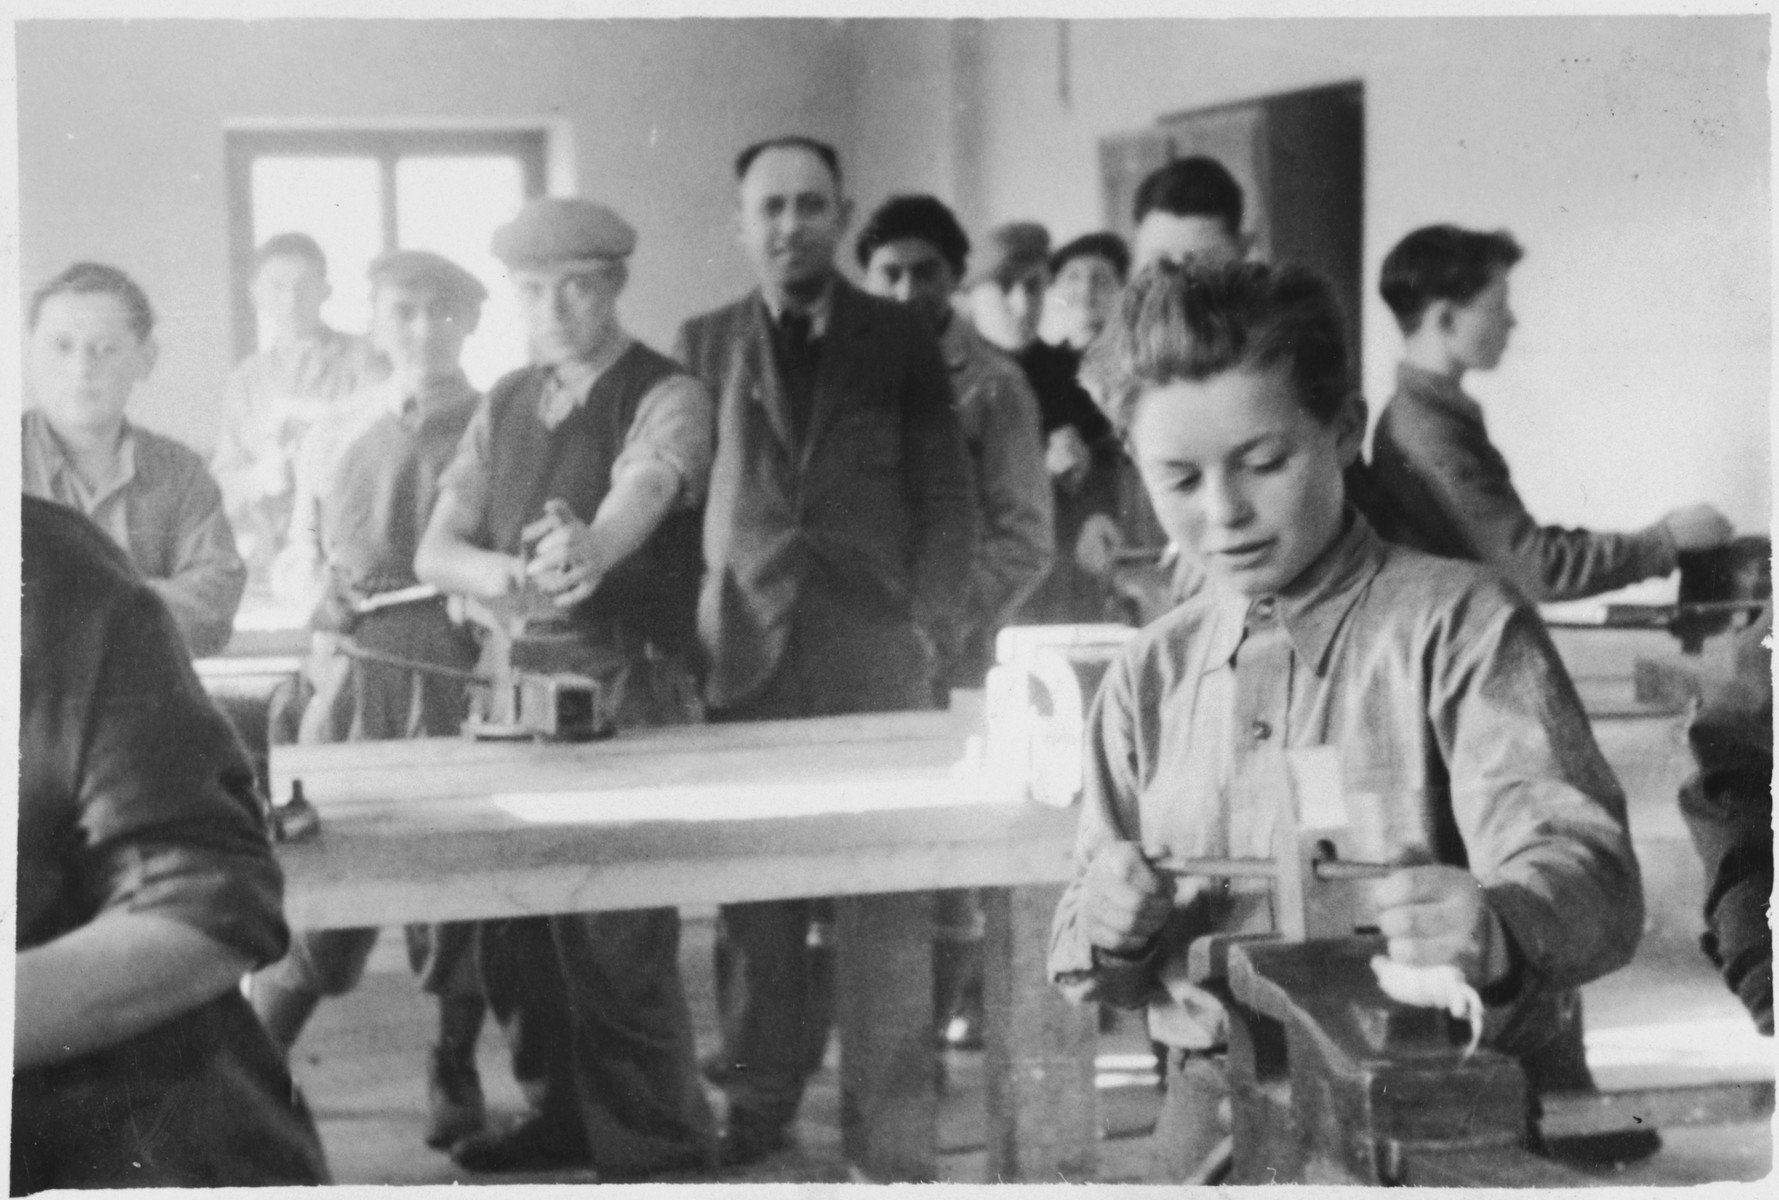 Jewish men and youth practice carpentry in a vocational workshop (probably in the Foehrenwald displaced persons camp).